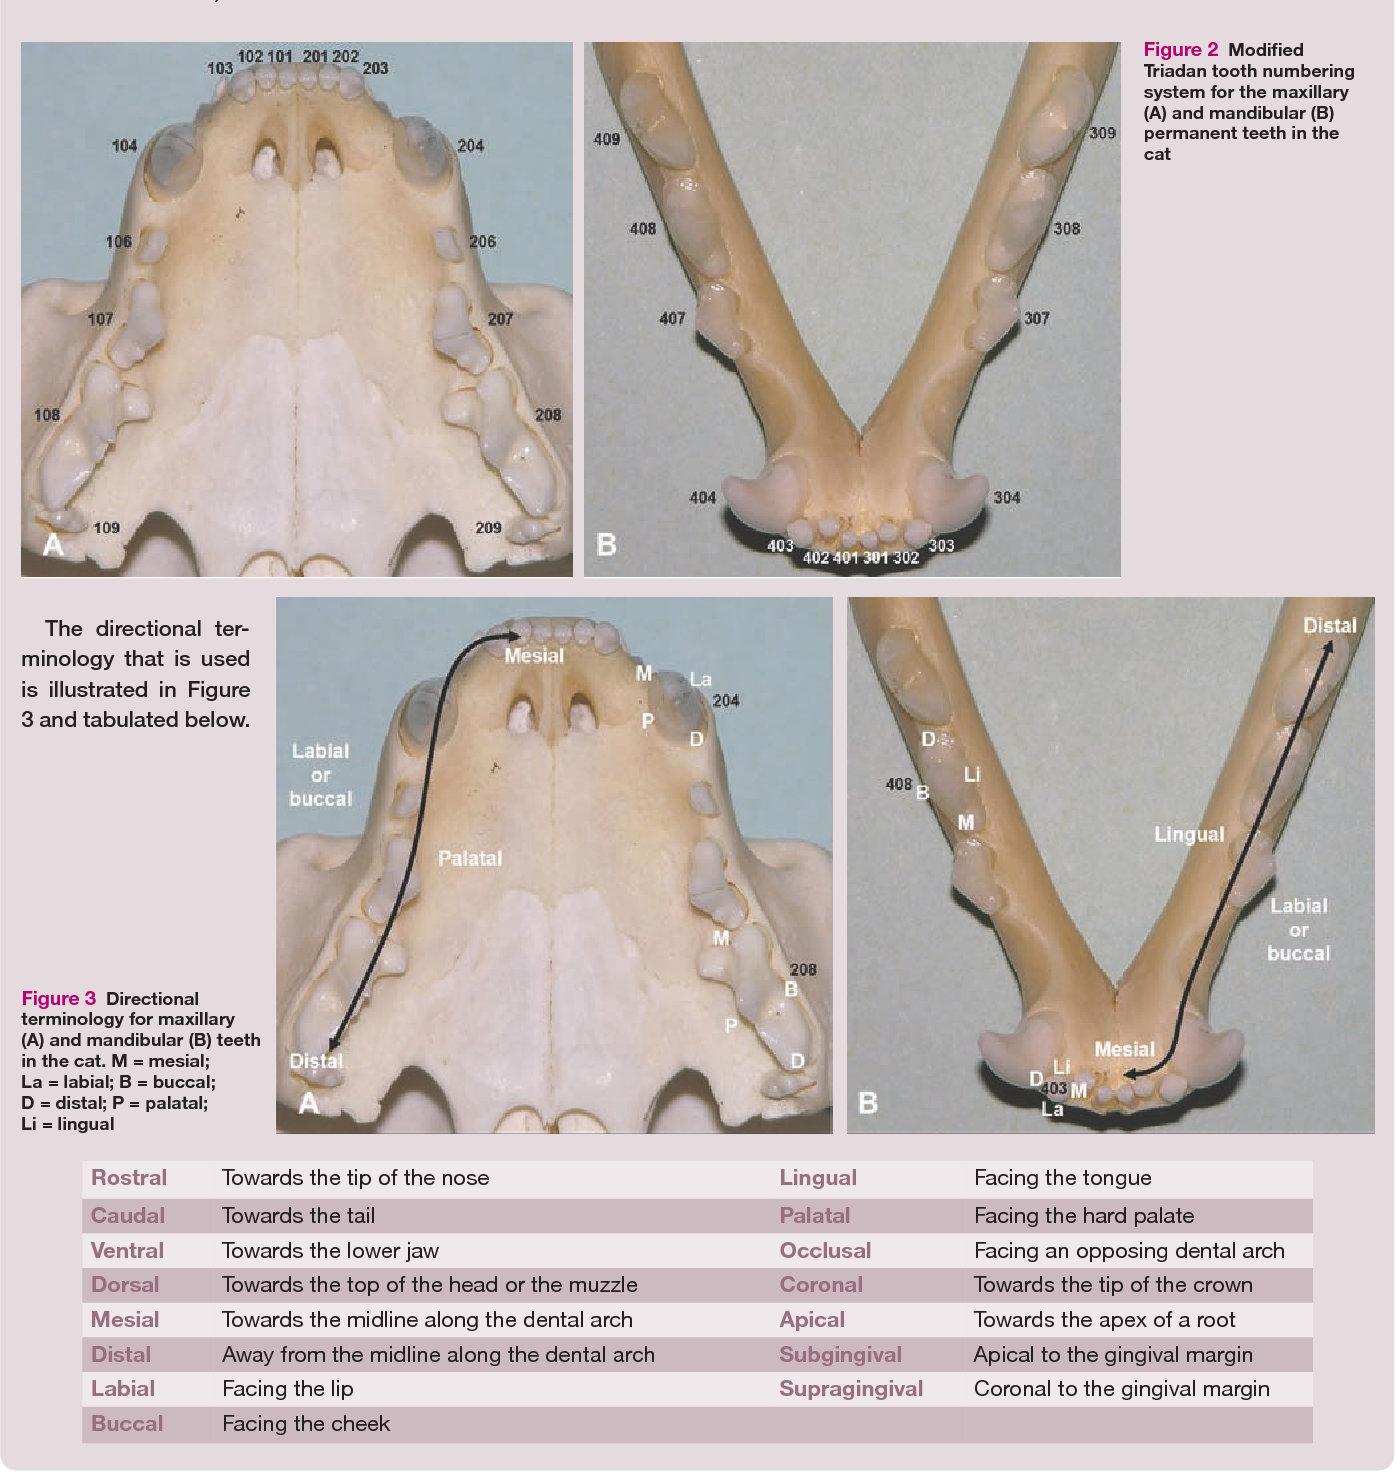 Applied feline oral anatomy and tooth extraction techniques: an ...